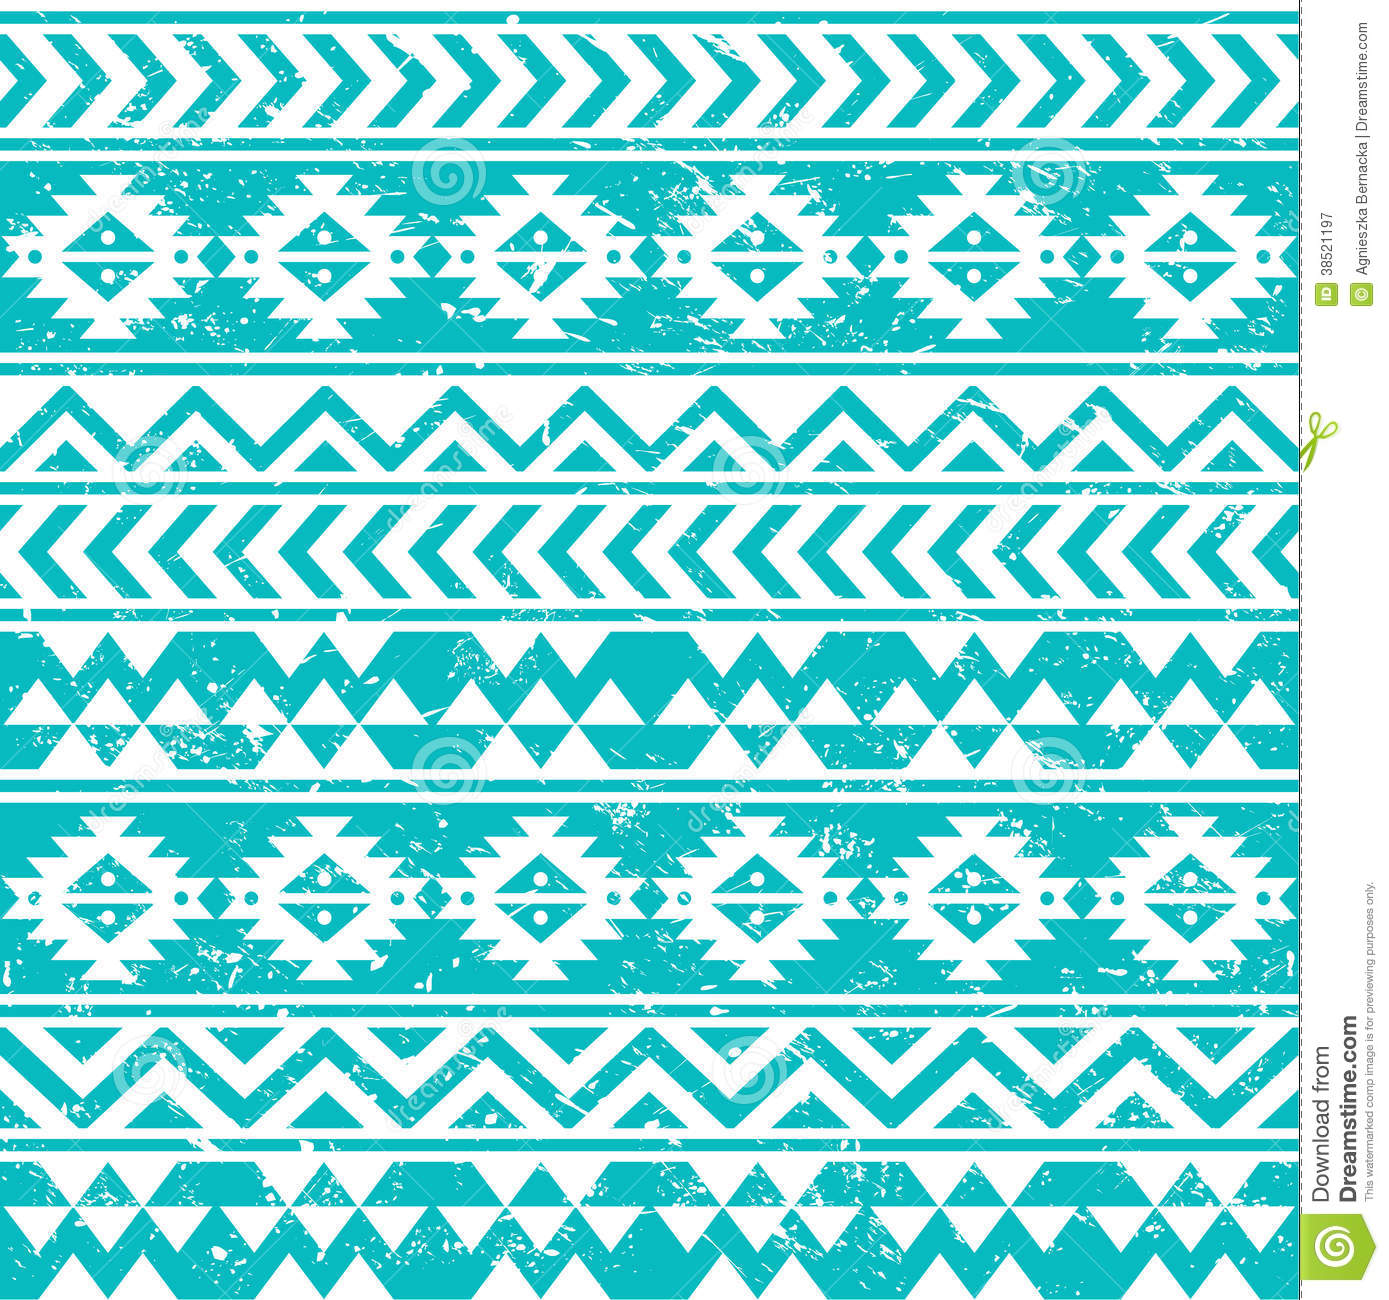 Blue Tribal Patterns Tumblr Background for Background Pattern Tumblr Blue  56bof